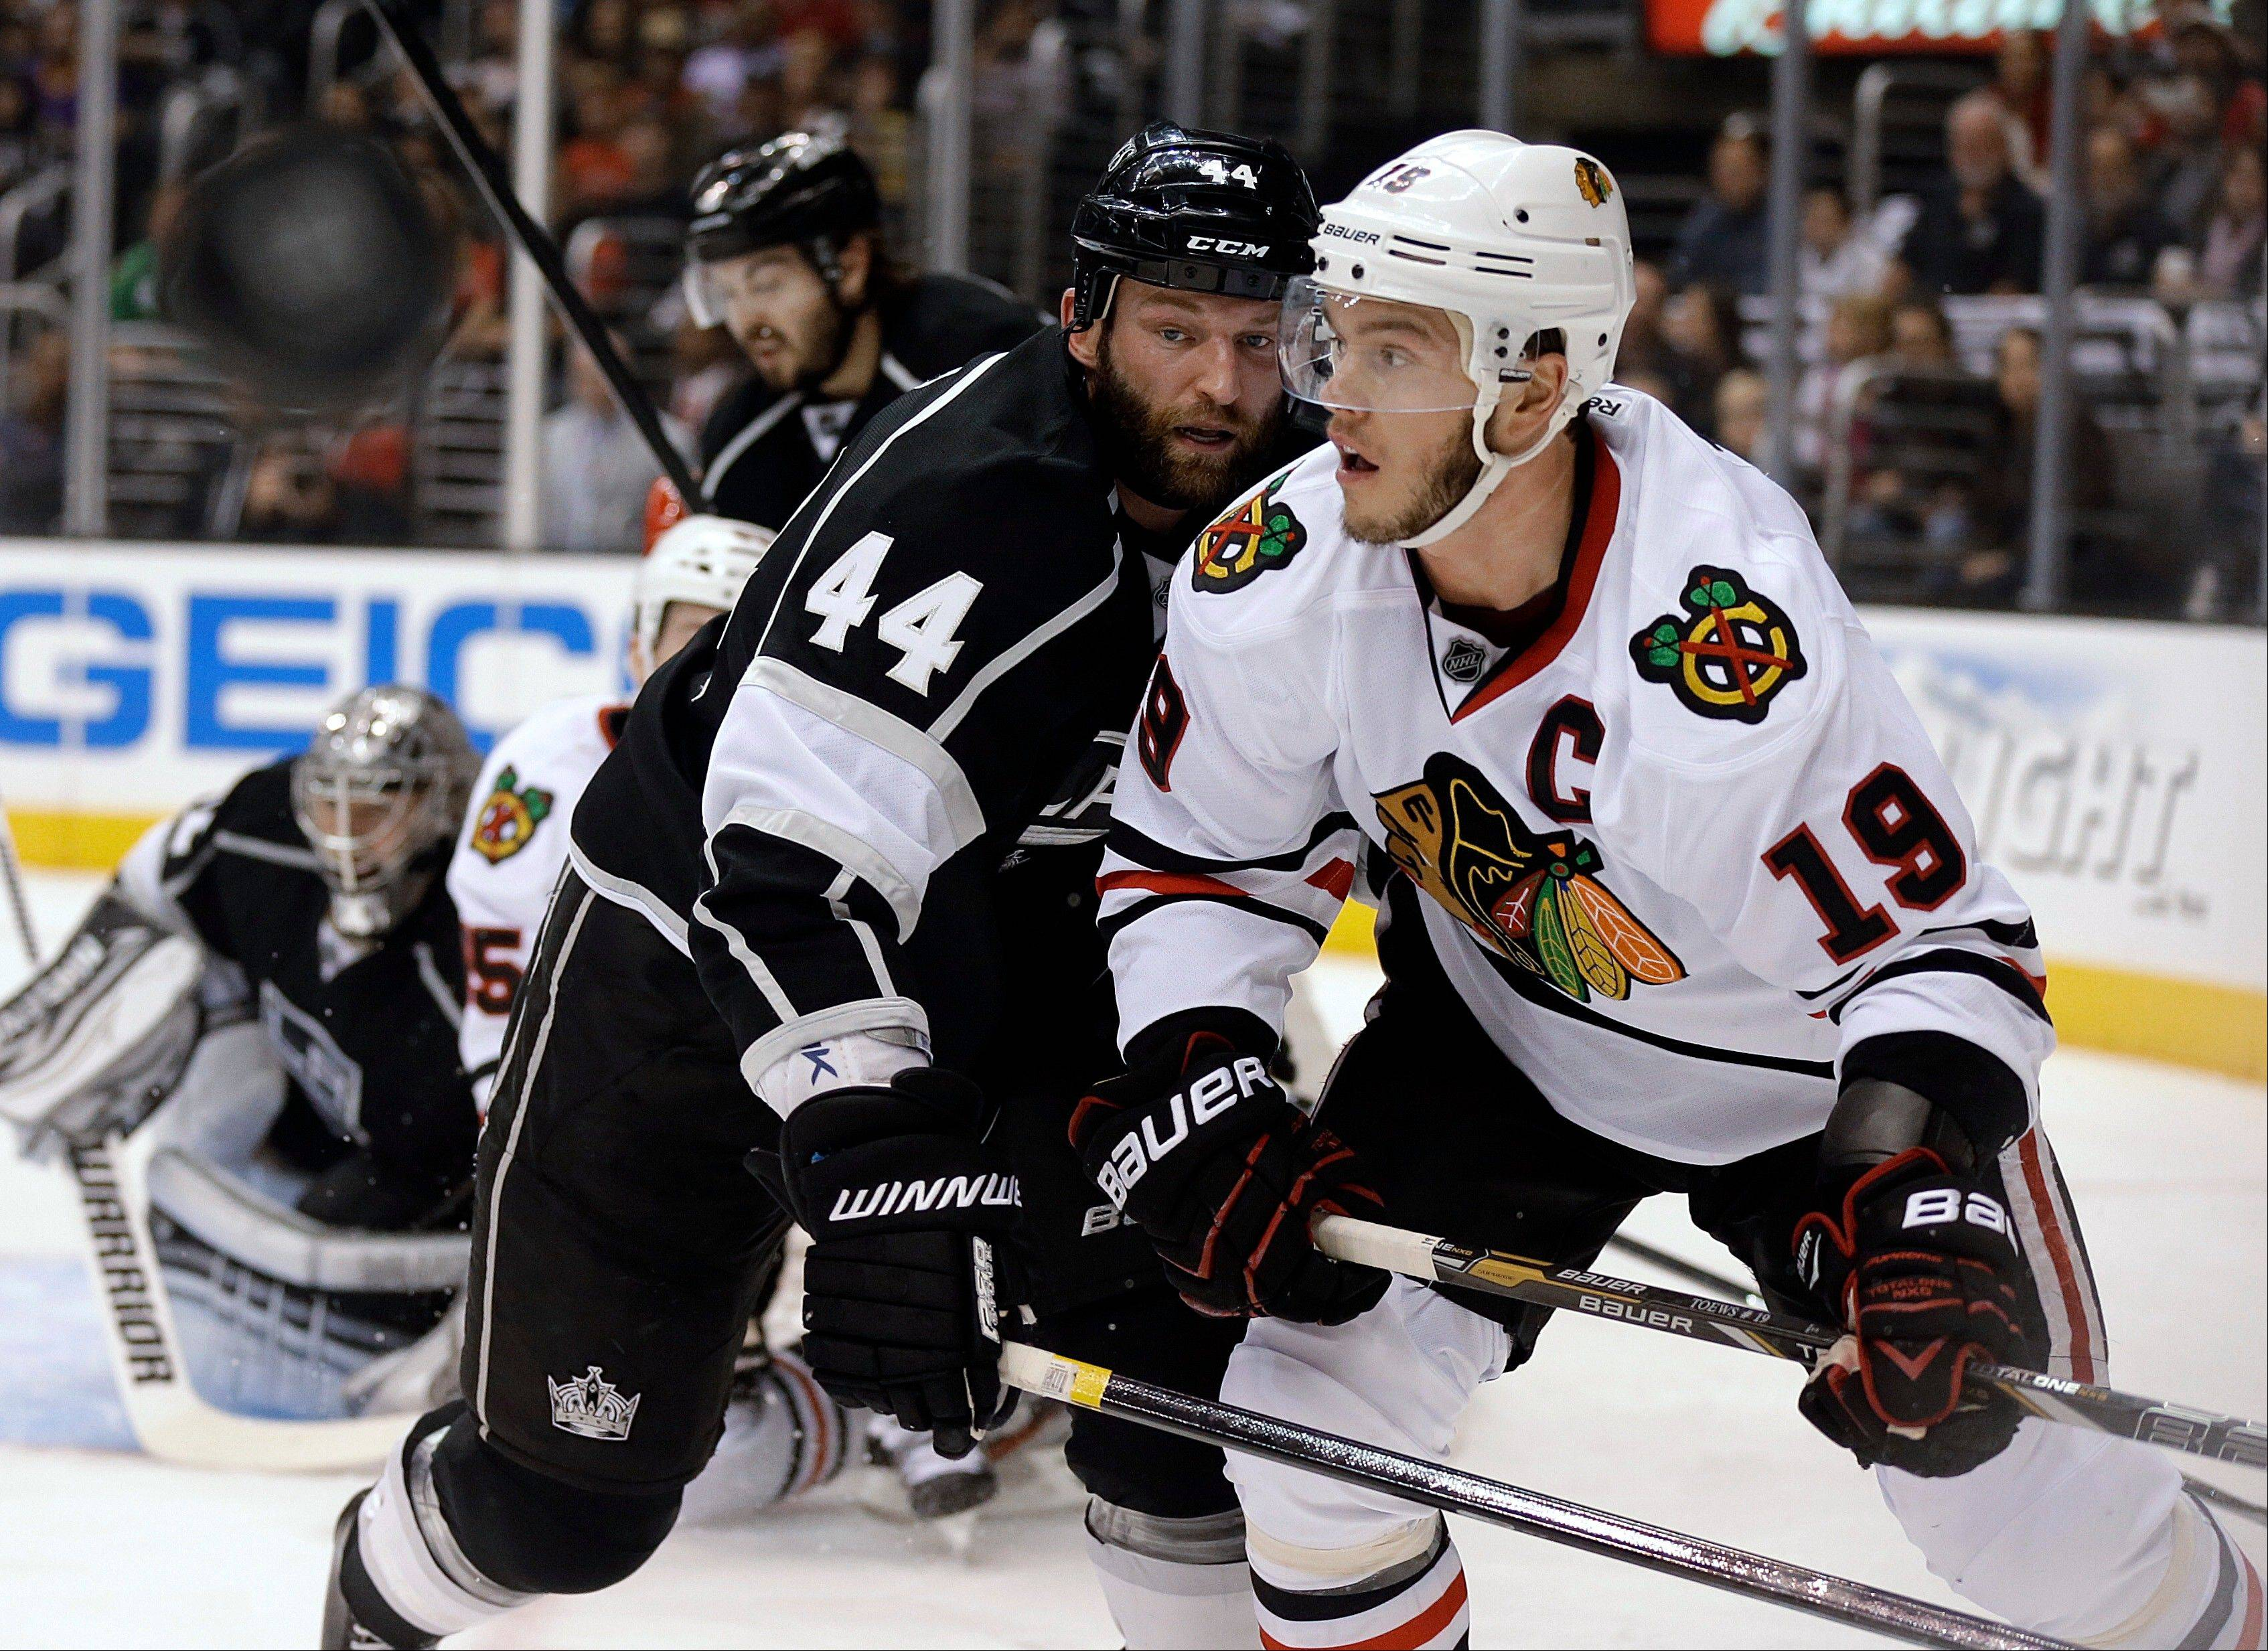 Los Angeles Kings defenseman Robyn Regehr (44) and Chicago Blackhawks center Jonathan Toews (19) work near the Kings goal during the first period of Game 4 of the NHL hockey Stanley Cup playoffs Western Conference finals, in Los Angeles on Thursday, June 6, 2013. (AP Photo/Reed Saxon)